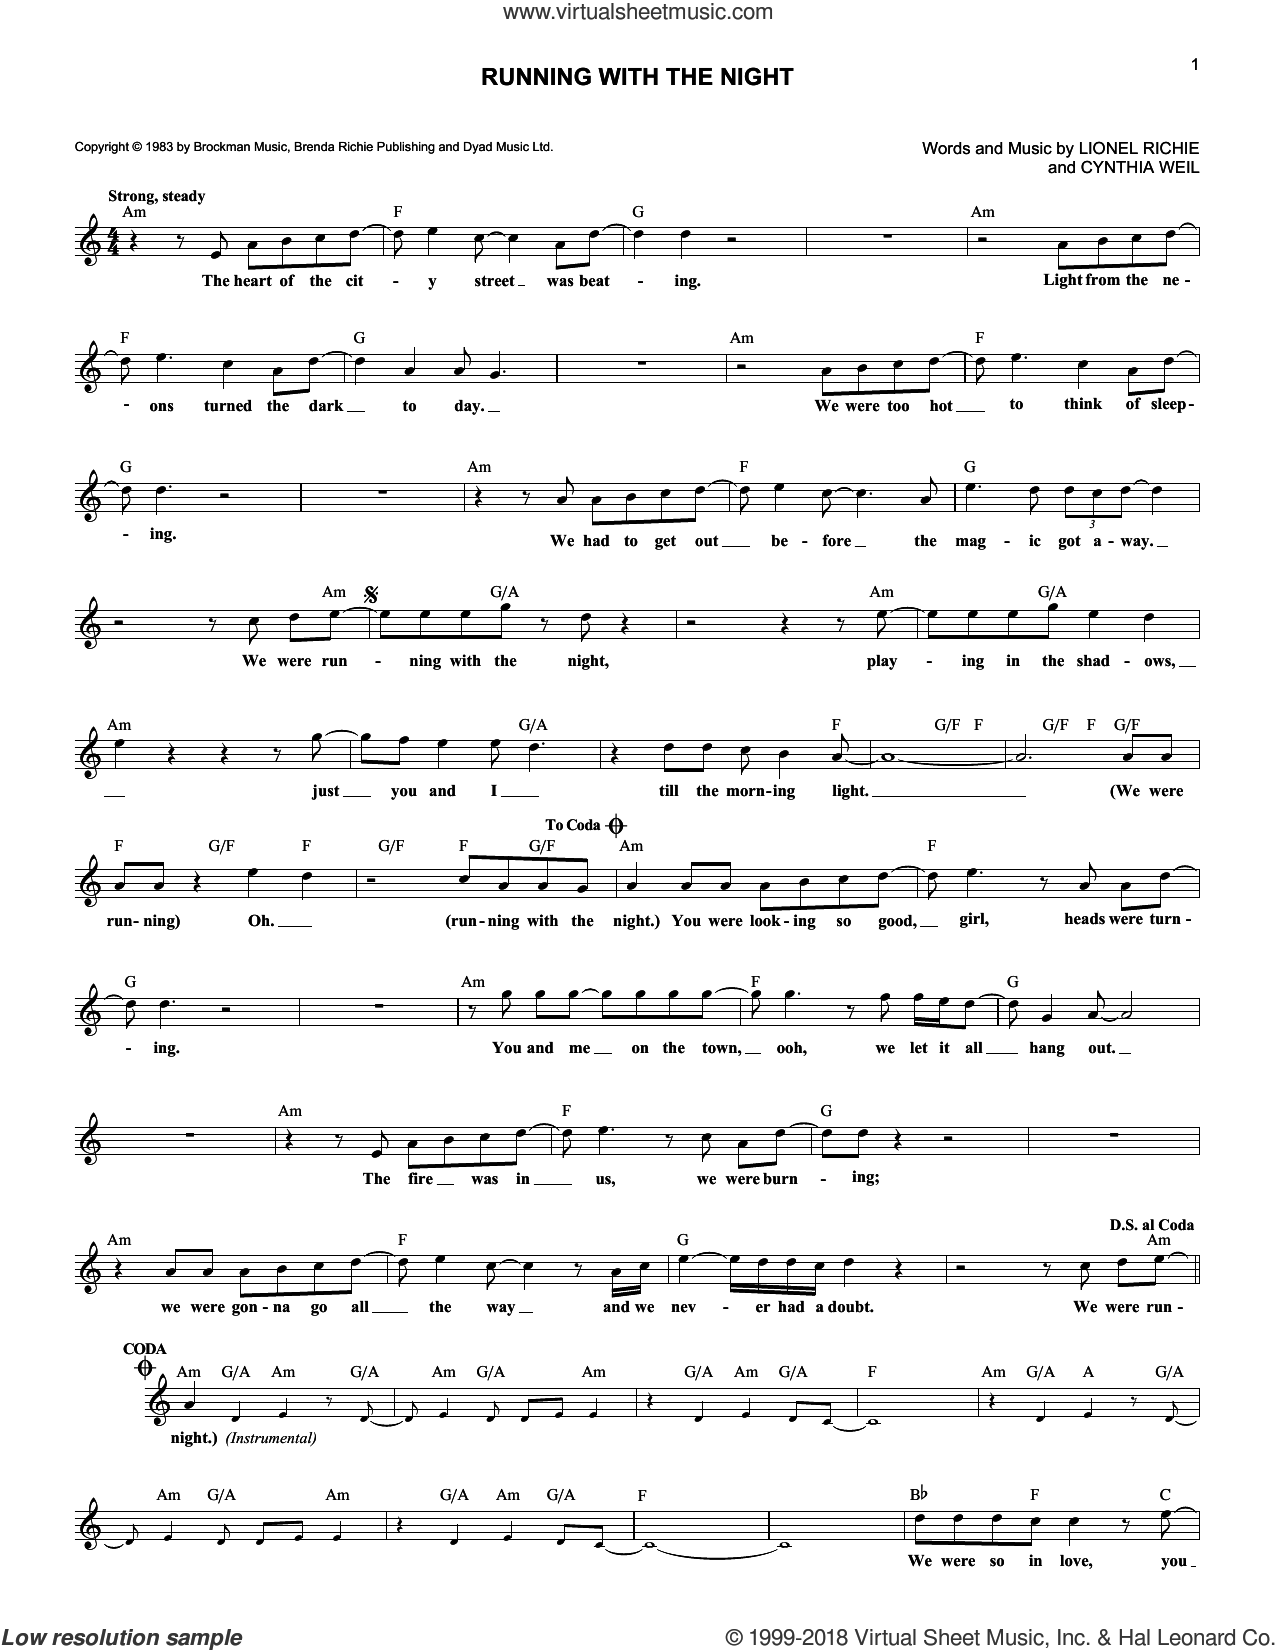 Running With The Night sheet music for voice and other instruments (fake book) by Lionel Richie and Cynthia Weil, intermediate skill level